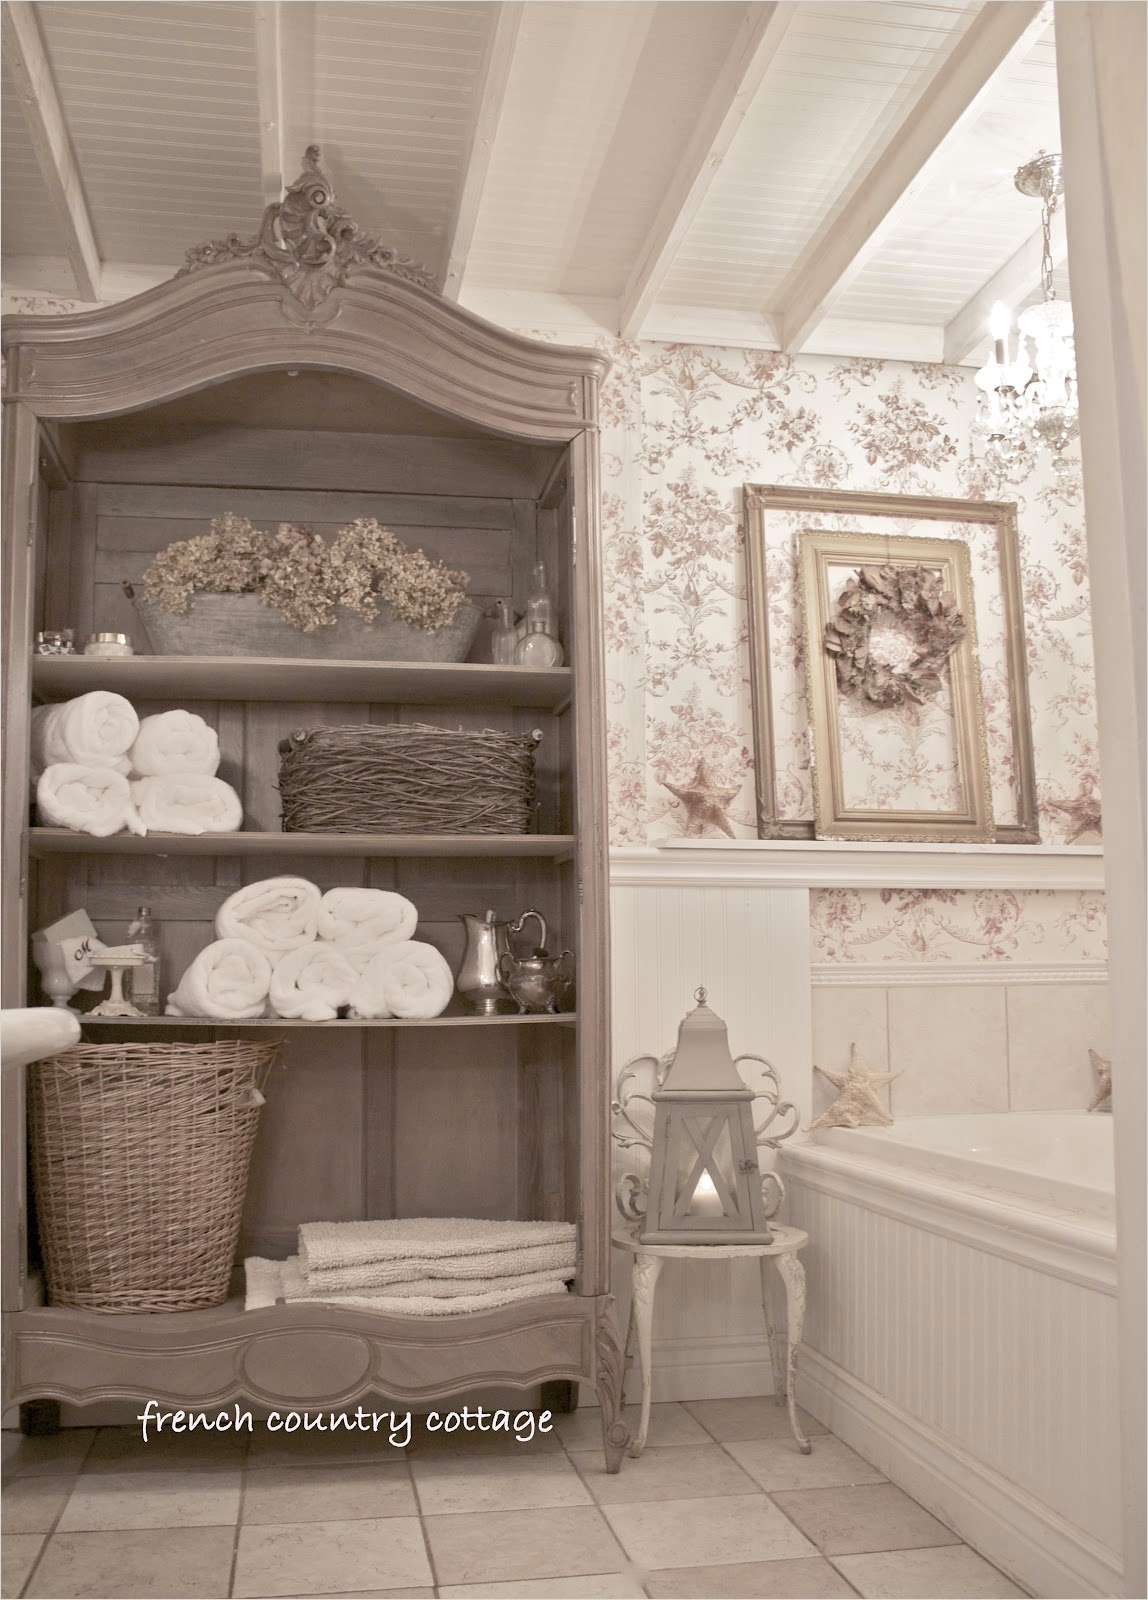 40 Stunning French Country Small Bathroom 96 Cottage Bathroom Inspirations French Country Cottage 8